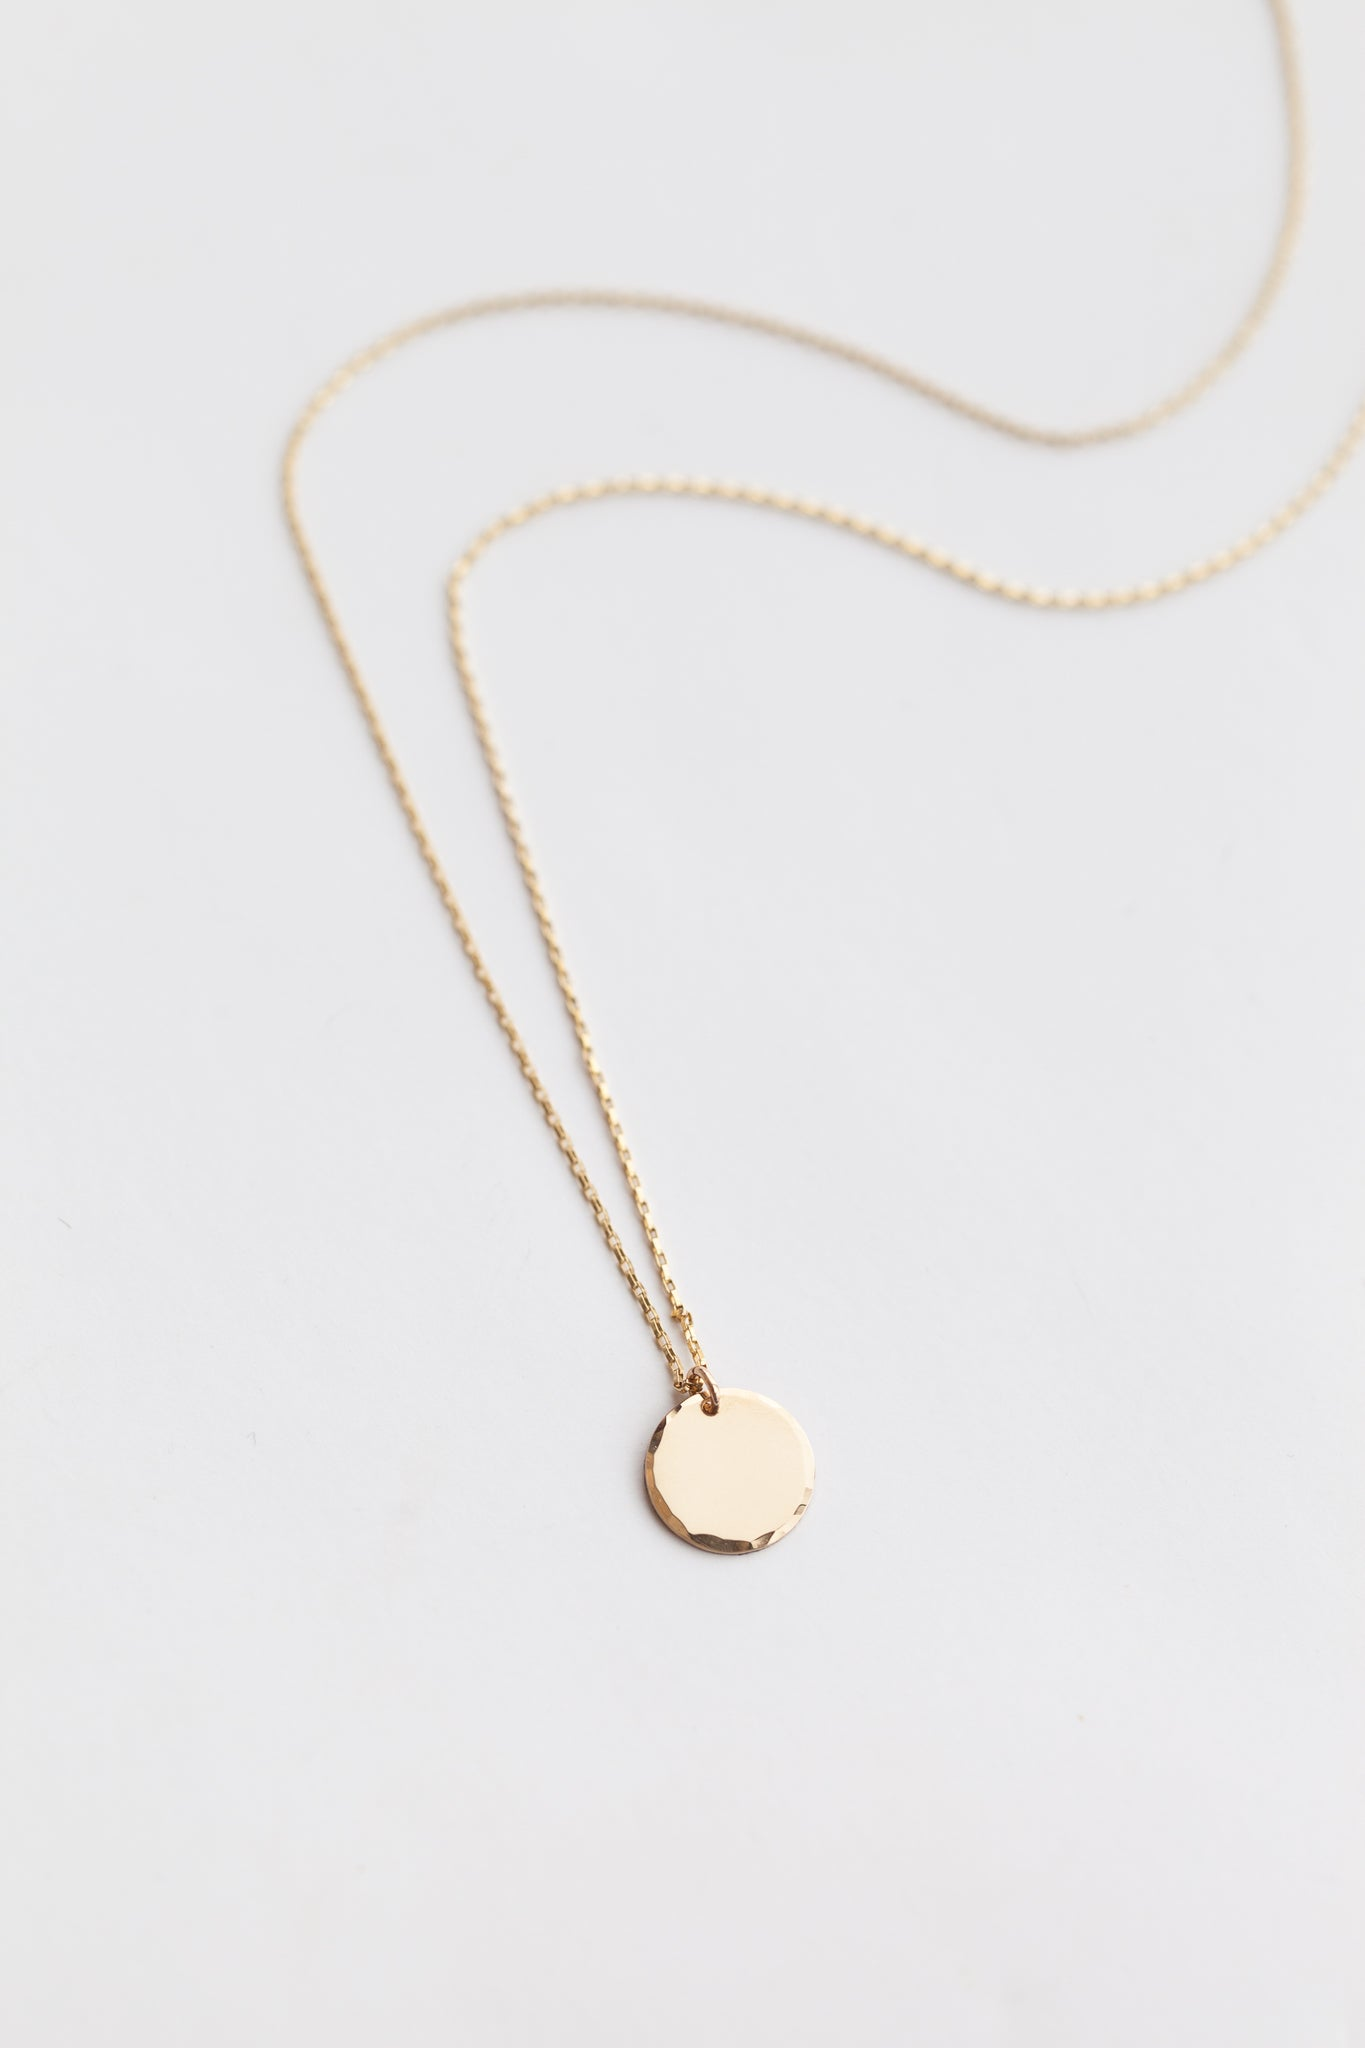 Mini Coin Necklace - Gold Fill